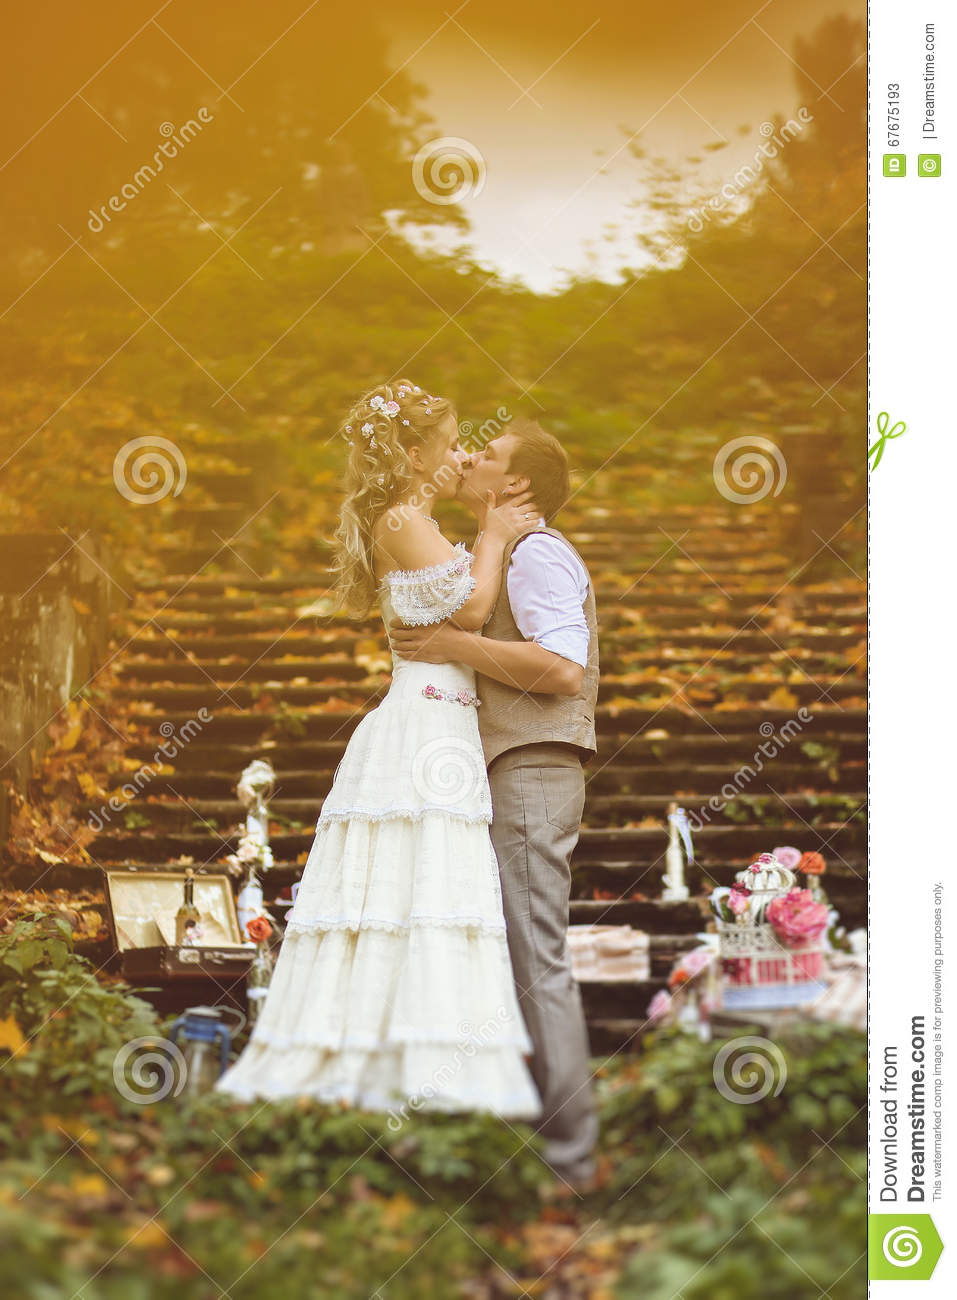 Wedding couple in a rustic style kissing near the stone steps surrounded by wedding decor at autumn forest